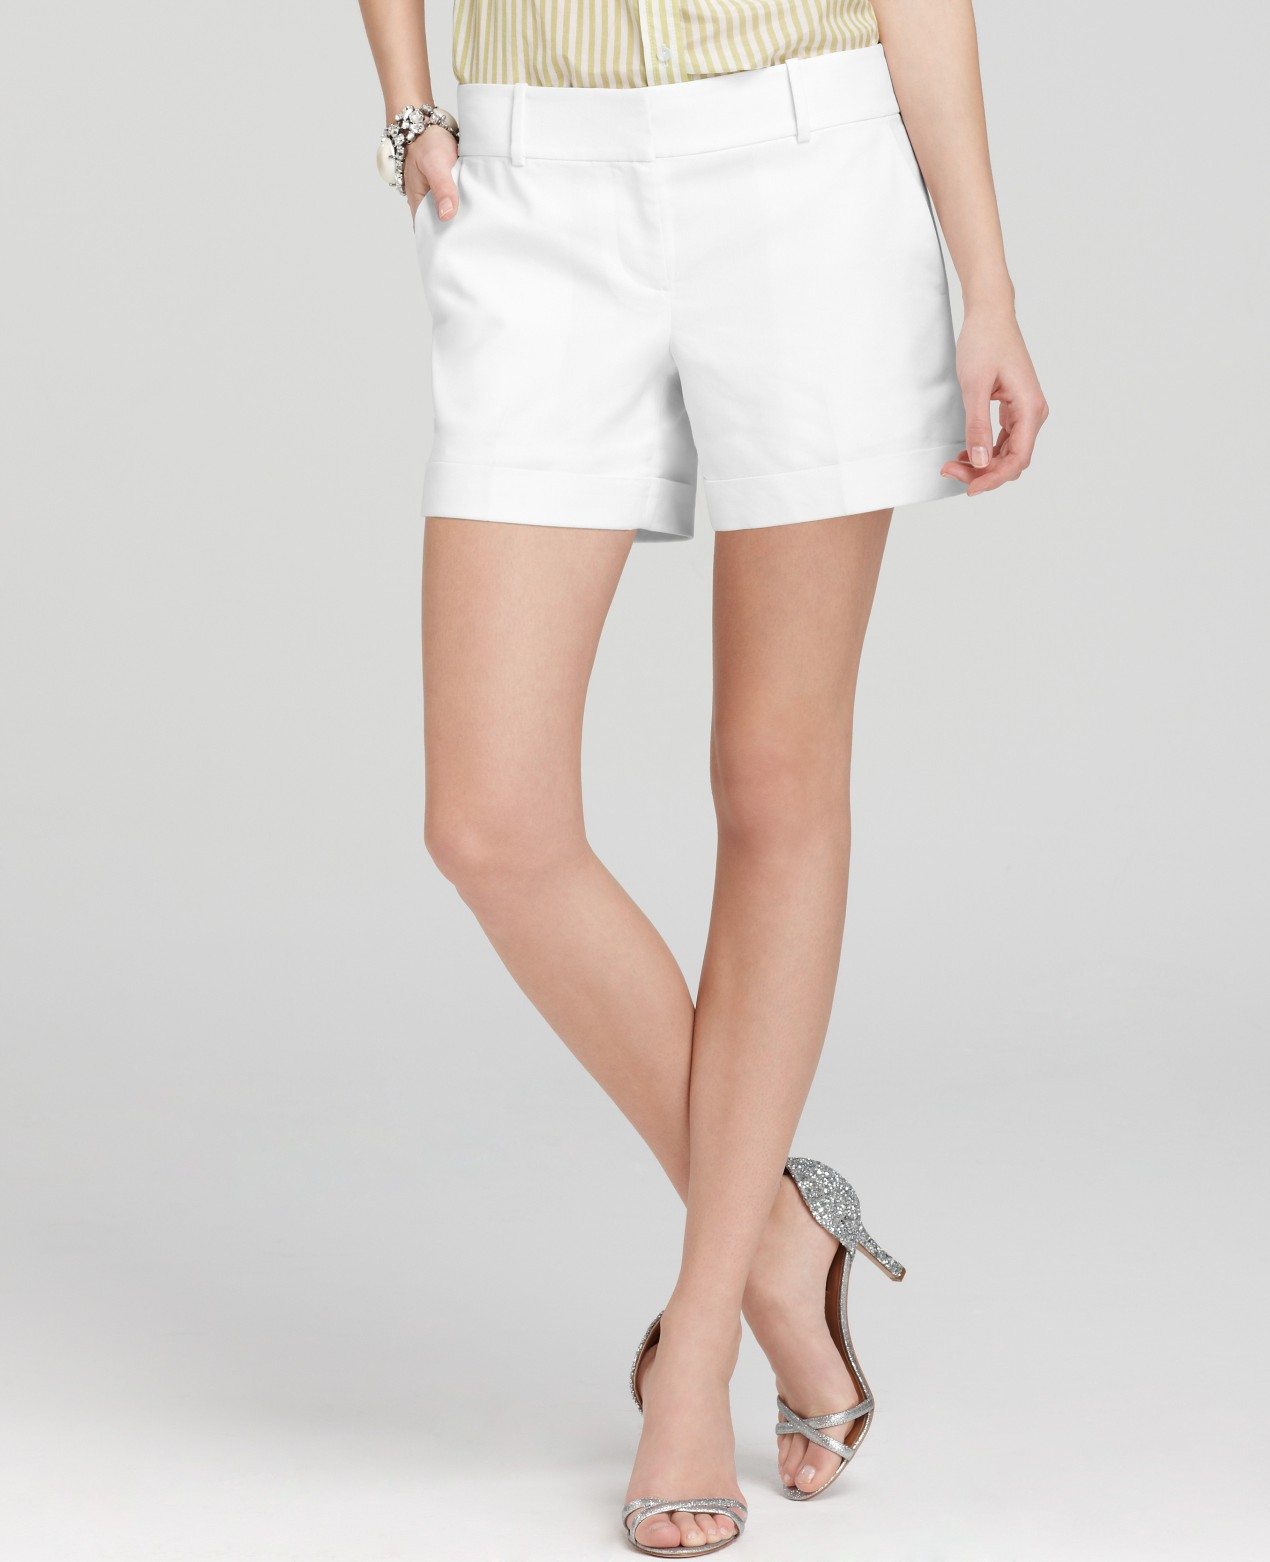 Ann taylor Petite Stretch Linen Twill Cuffed Shorts in White | Lyst